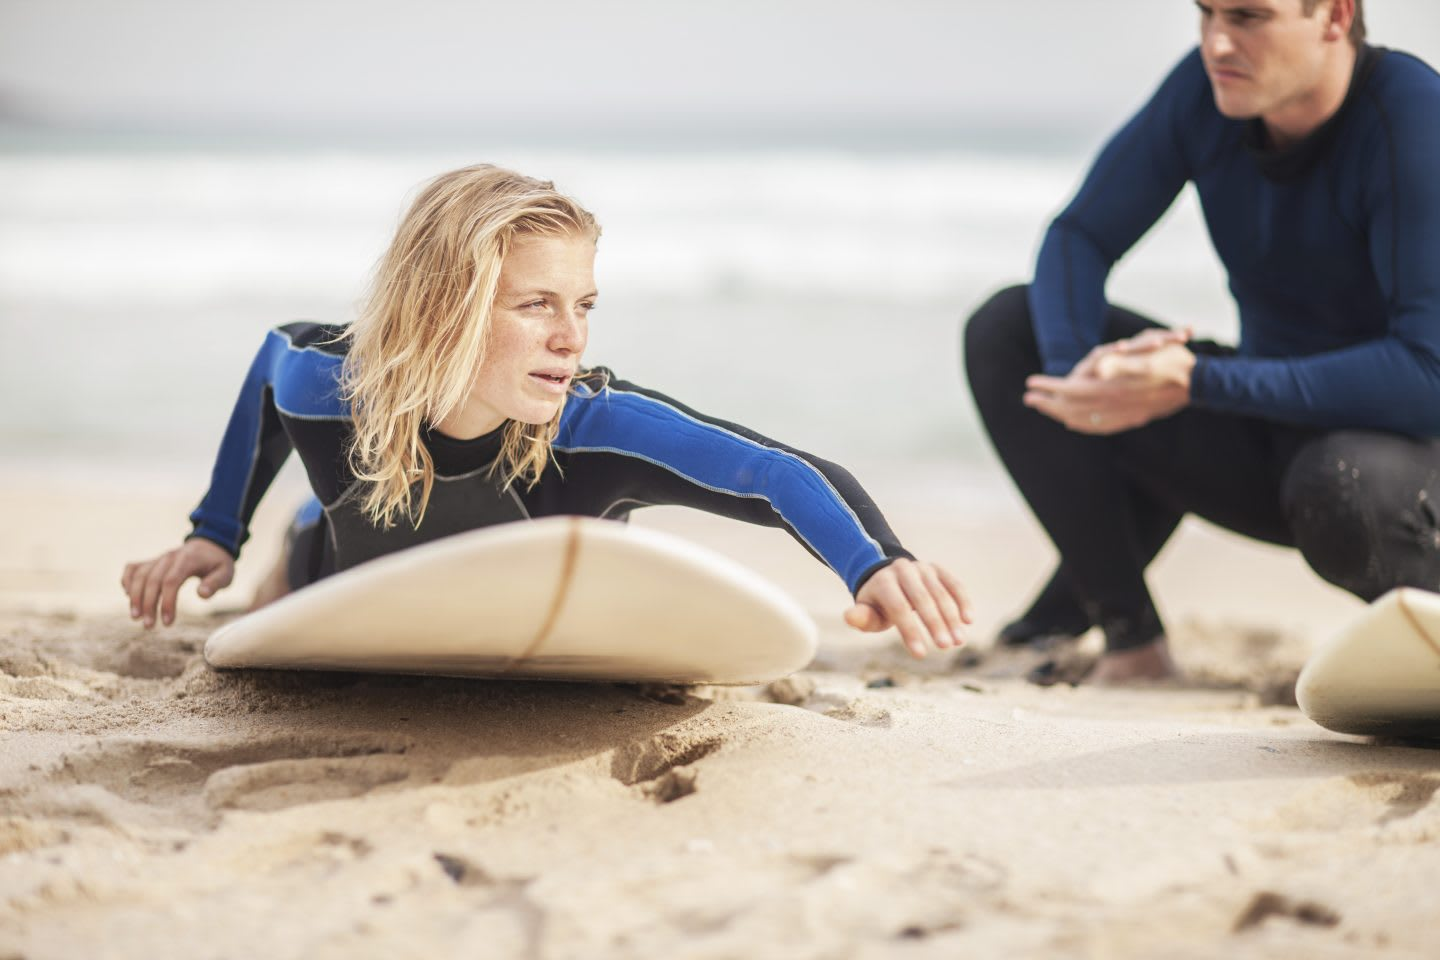 Man instructing woman on surfboard on the beach. learning, surf, student, beach, sand